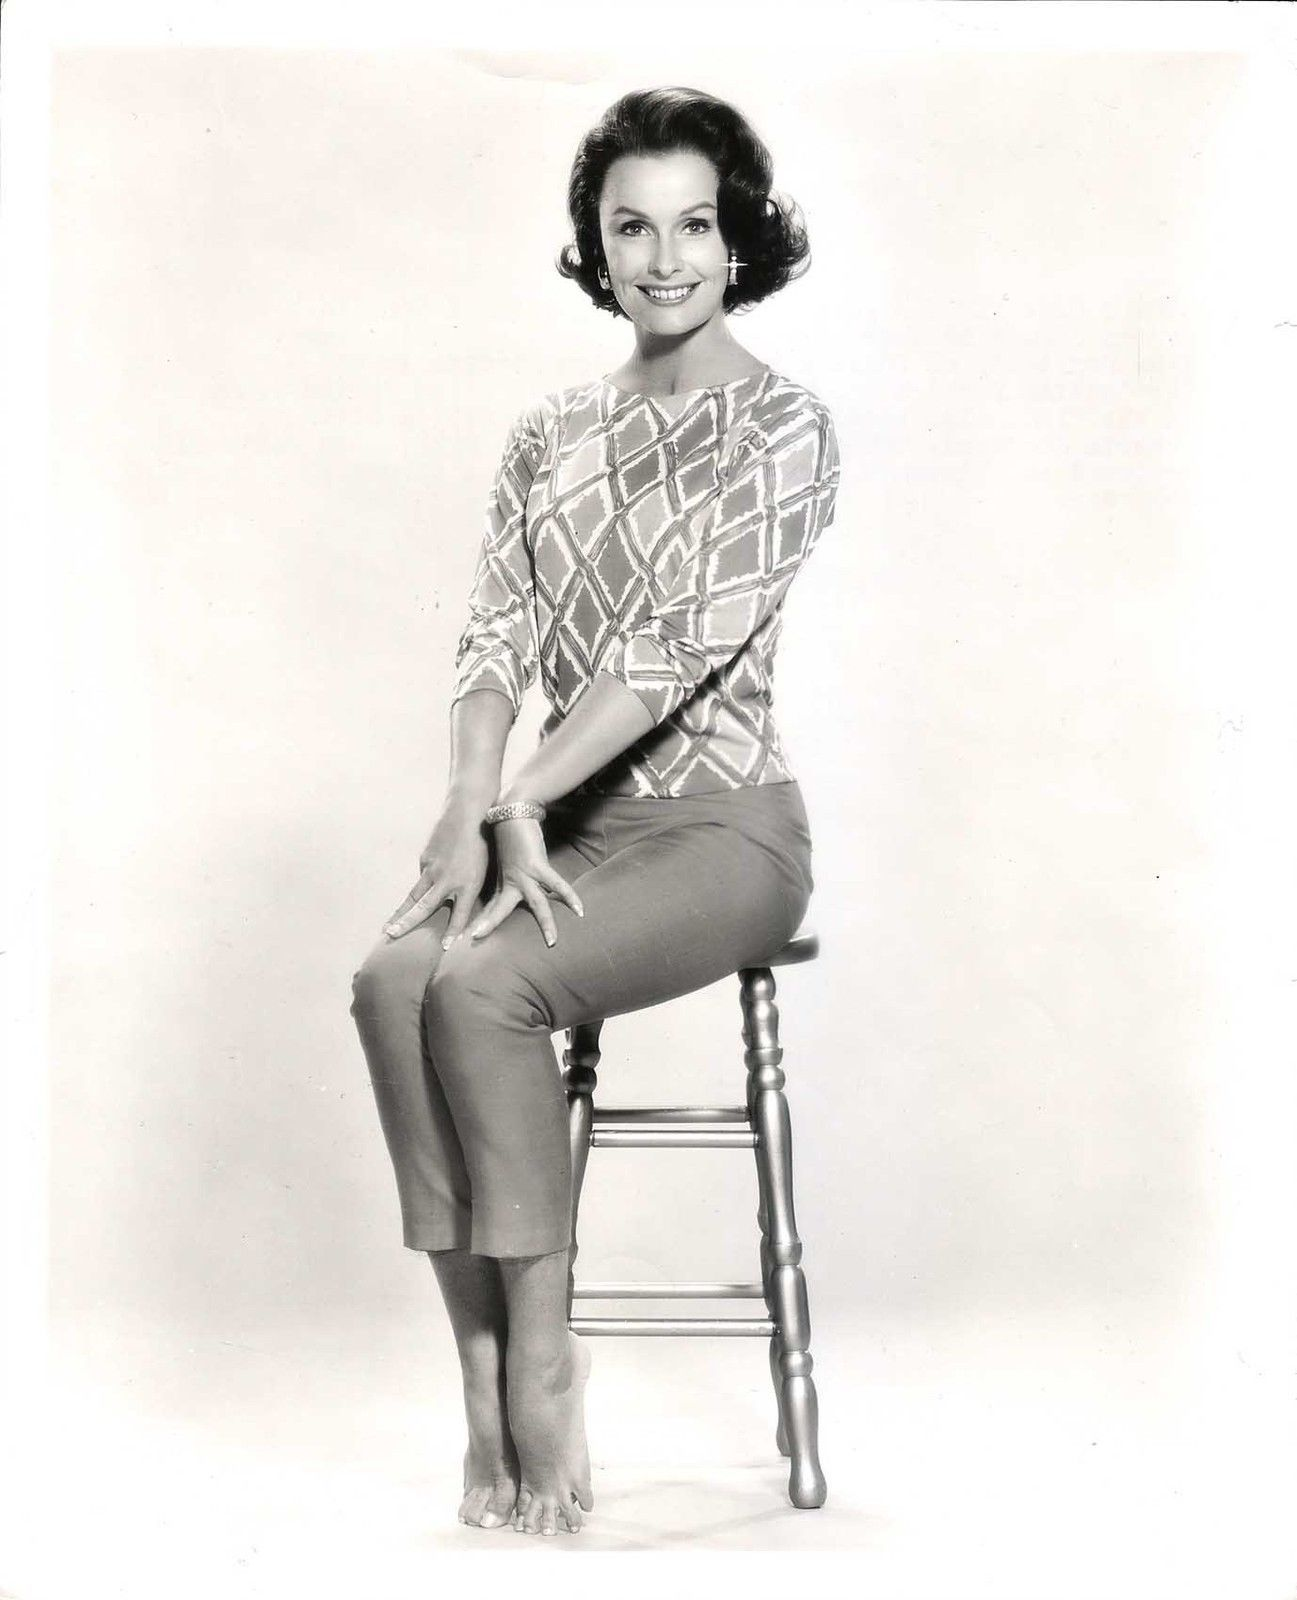 dina merrill's daughter heather robertson